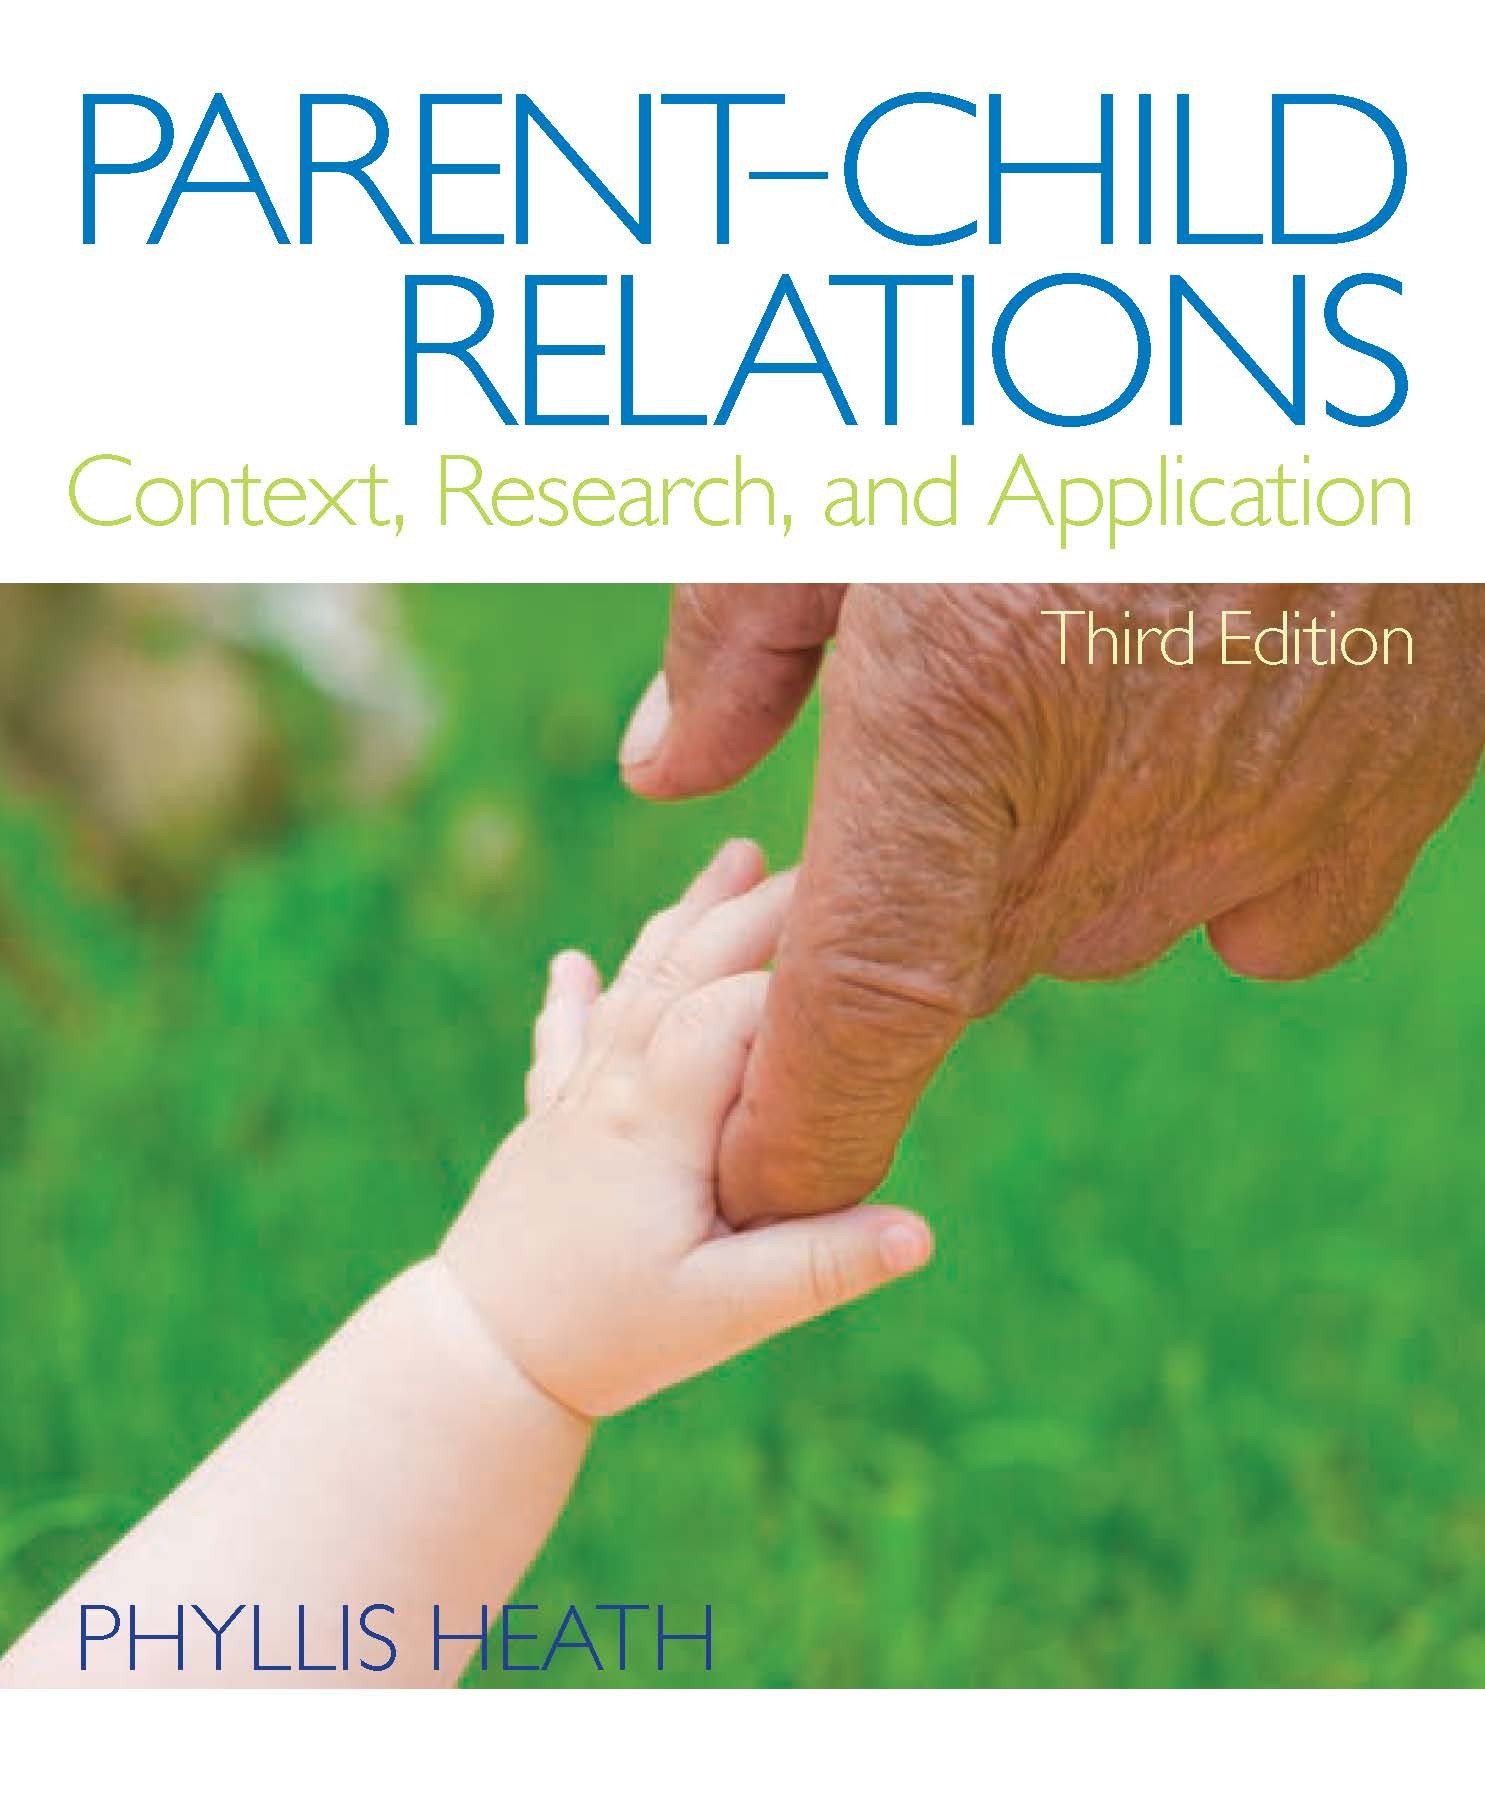 Parent-Child Relations: Context, Research, and Applications, CourseSmart eTextbook, 3rd Edition